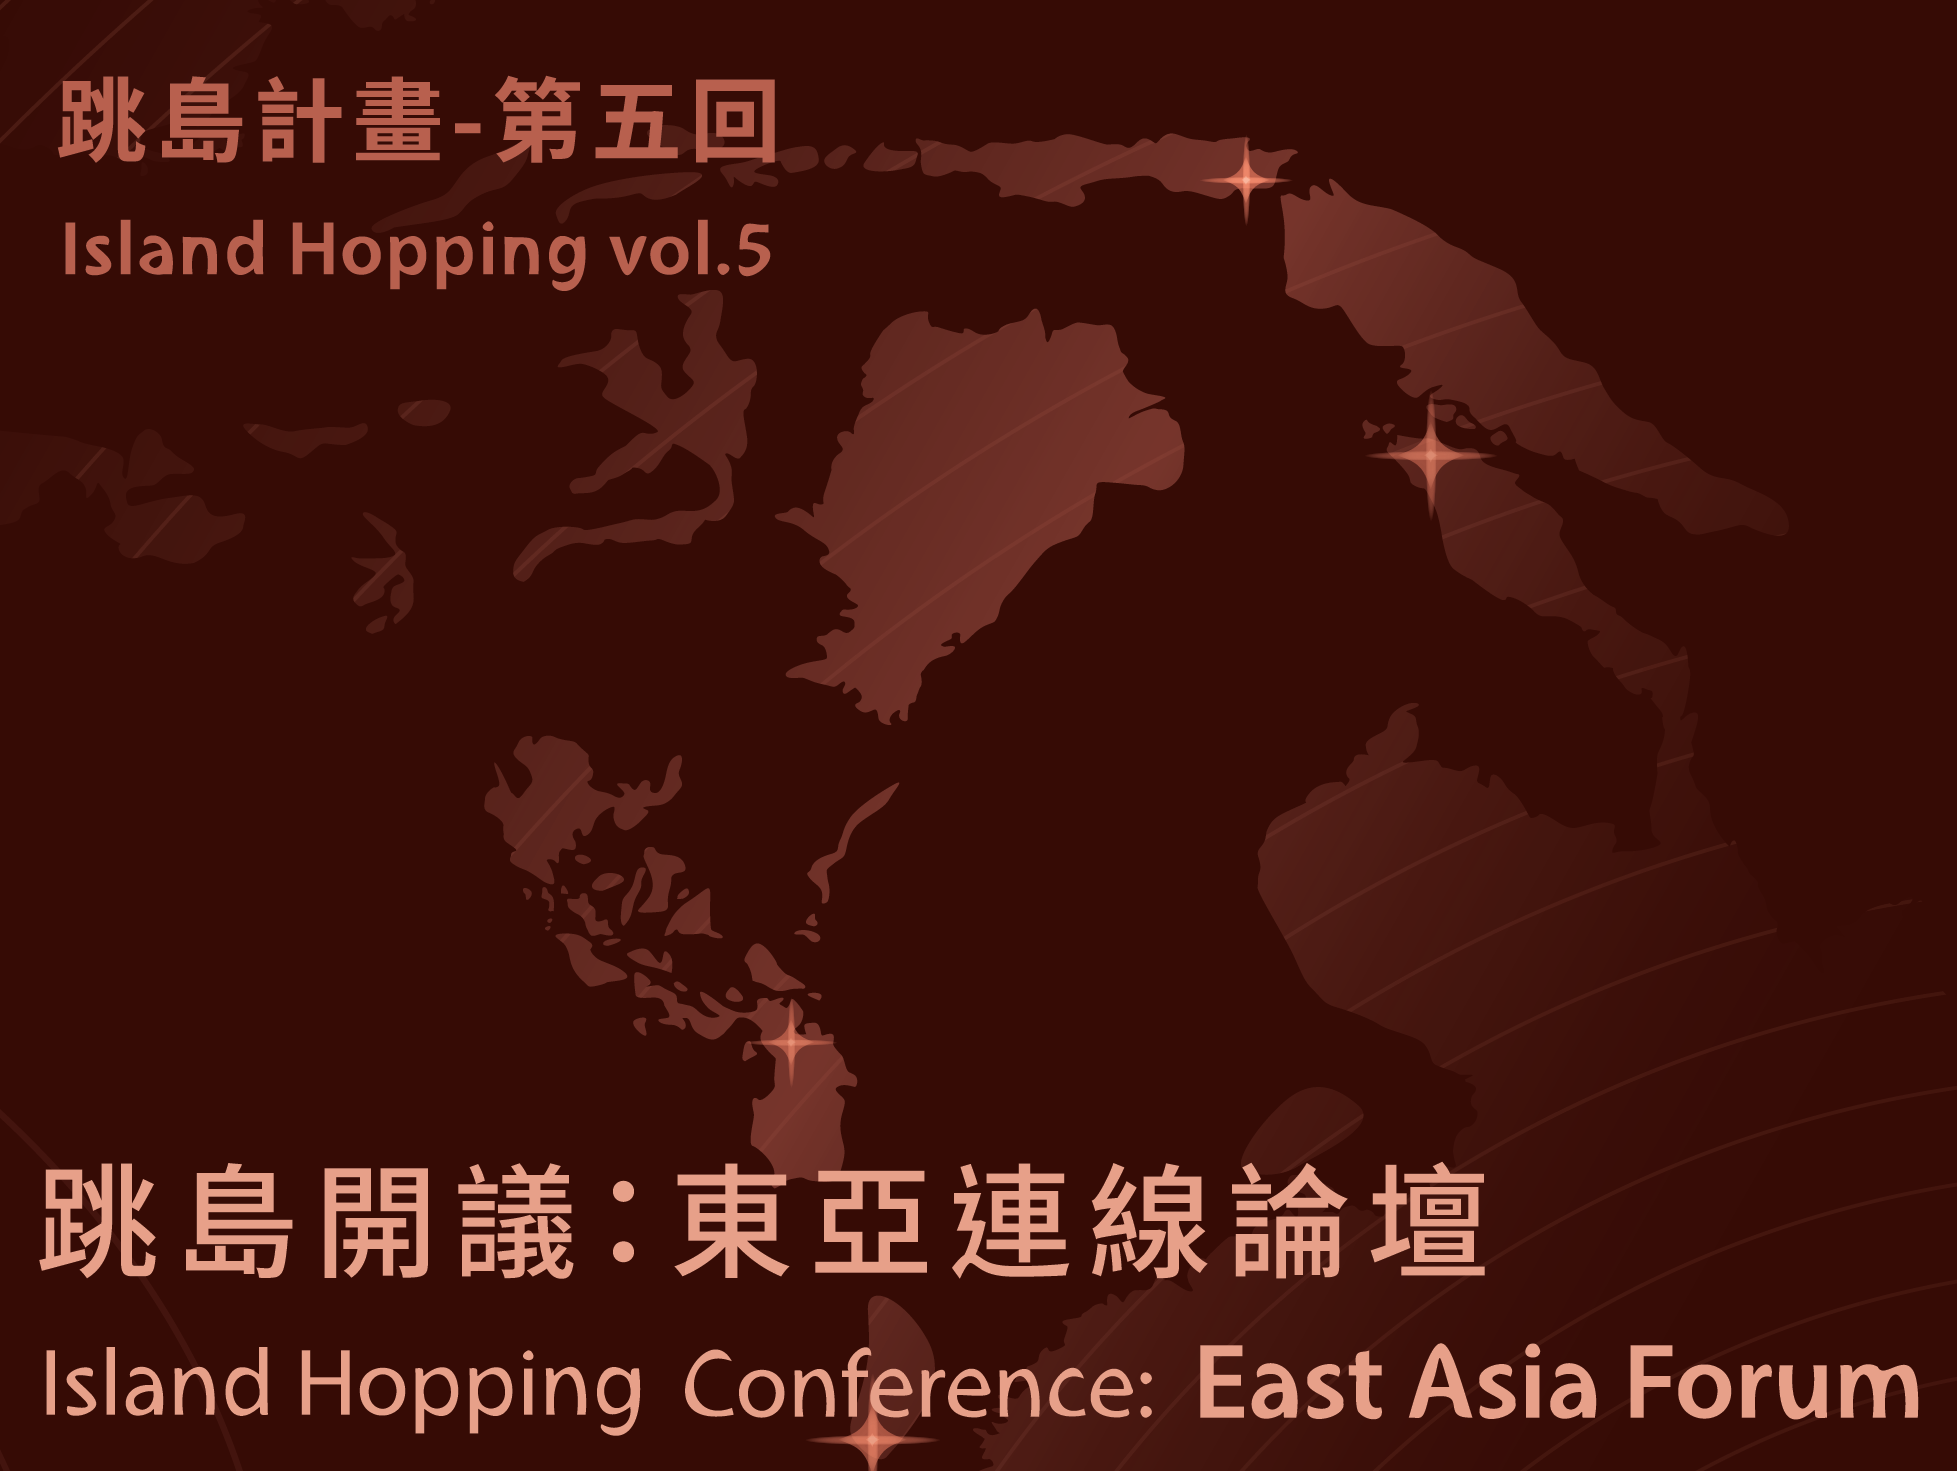 Island Hopping Conference: East Asia Forum